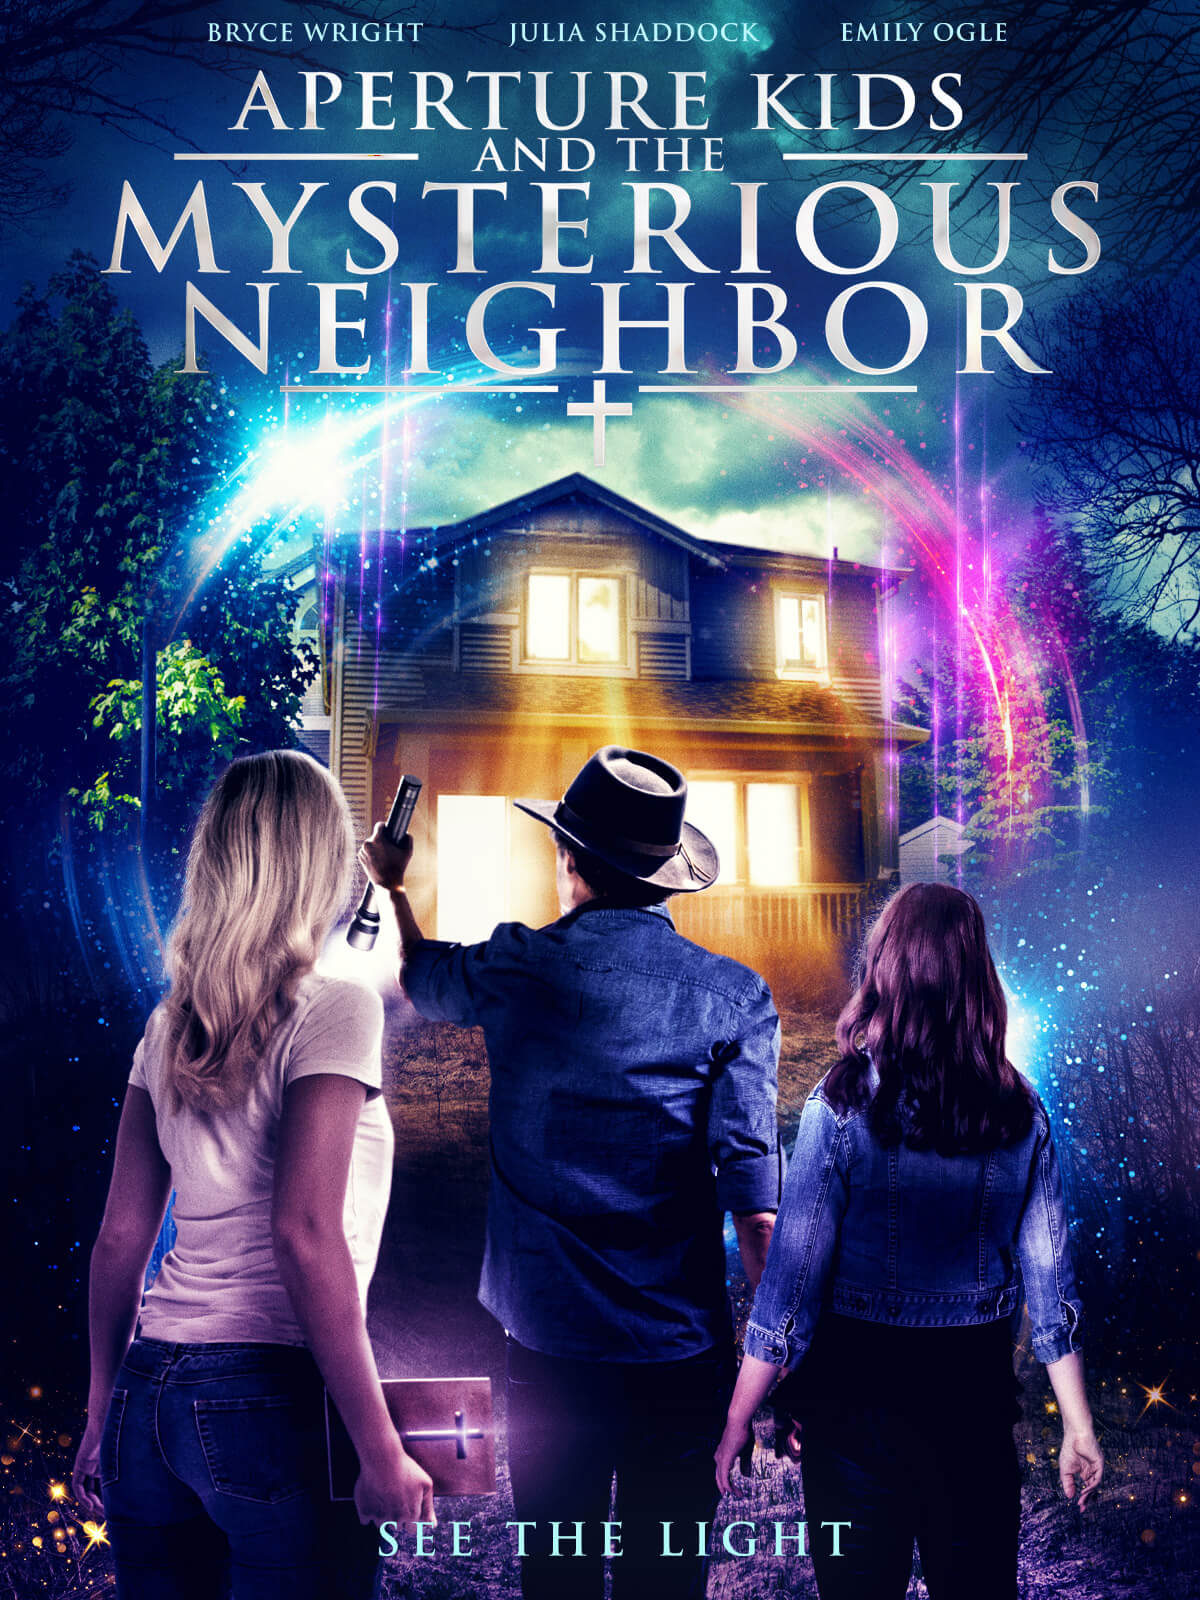 Aperture Kids and the Mysterious Neighbor 1200x1600 1 APERTURE KIDS AND THE MYSTERIOUS NEIGHBOR